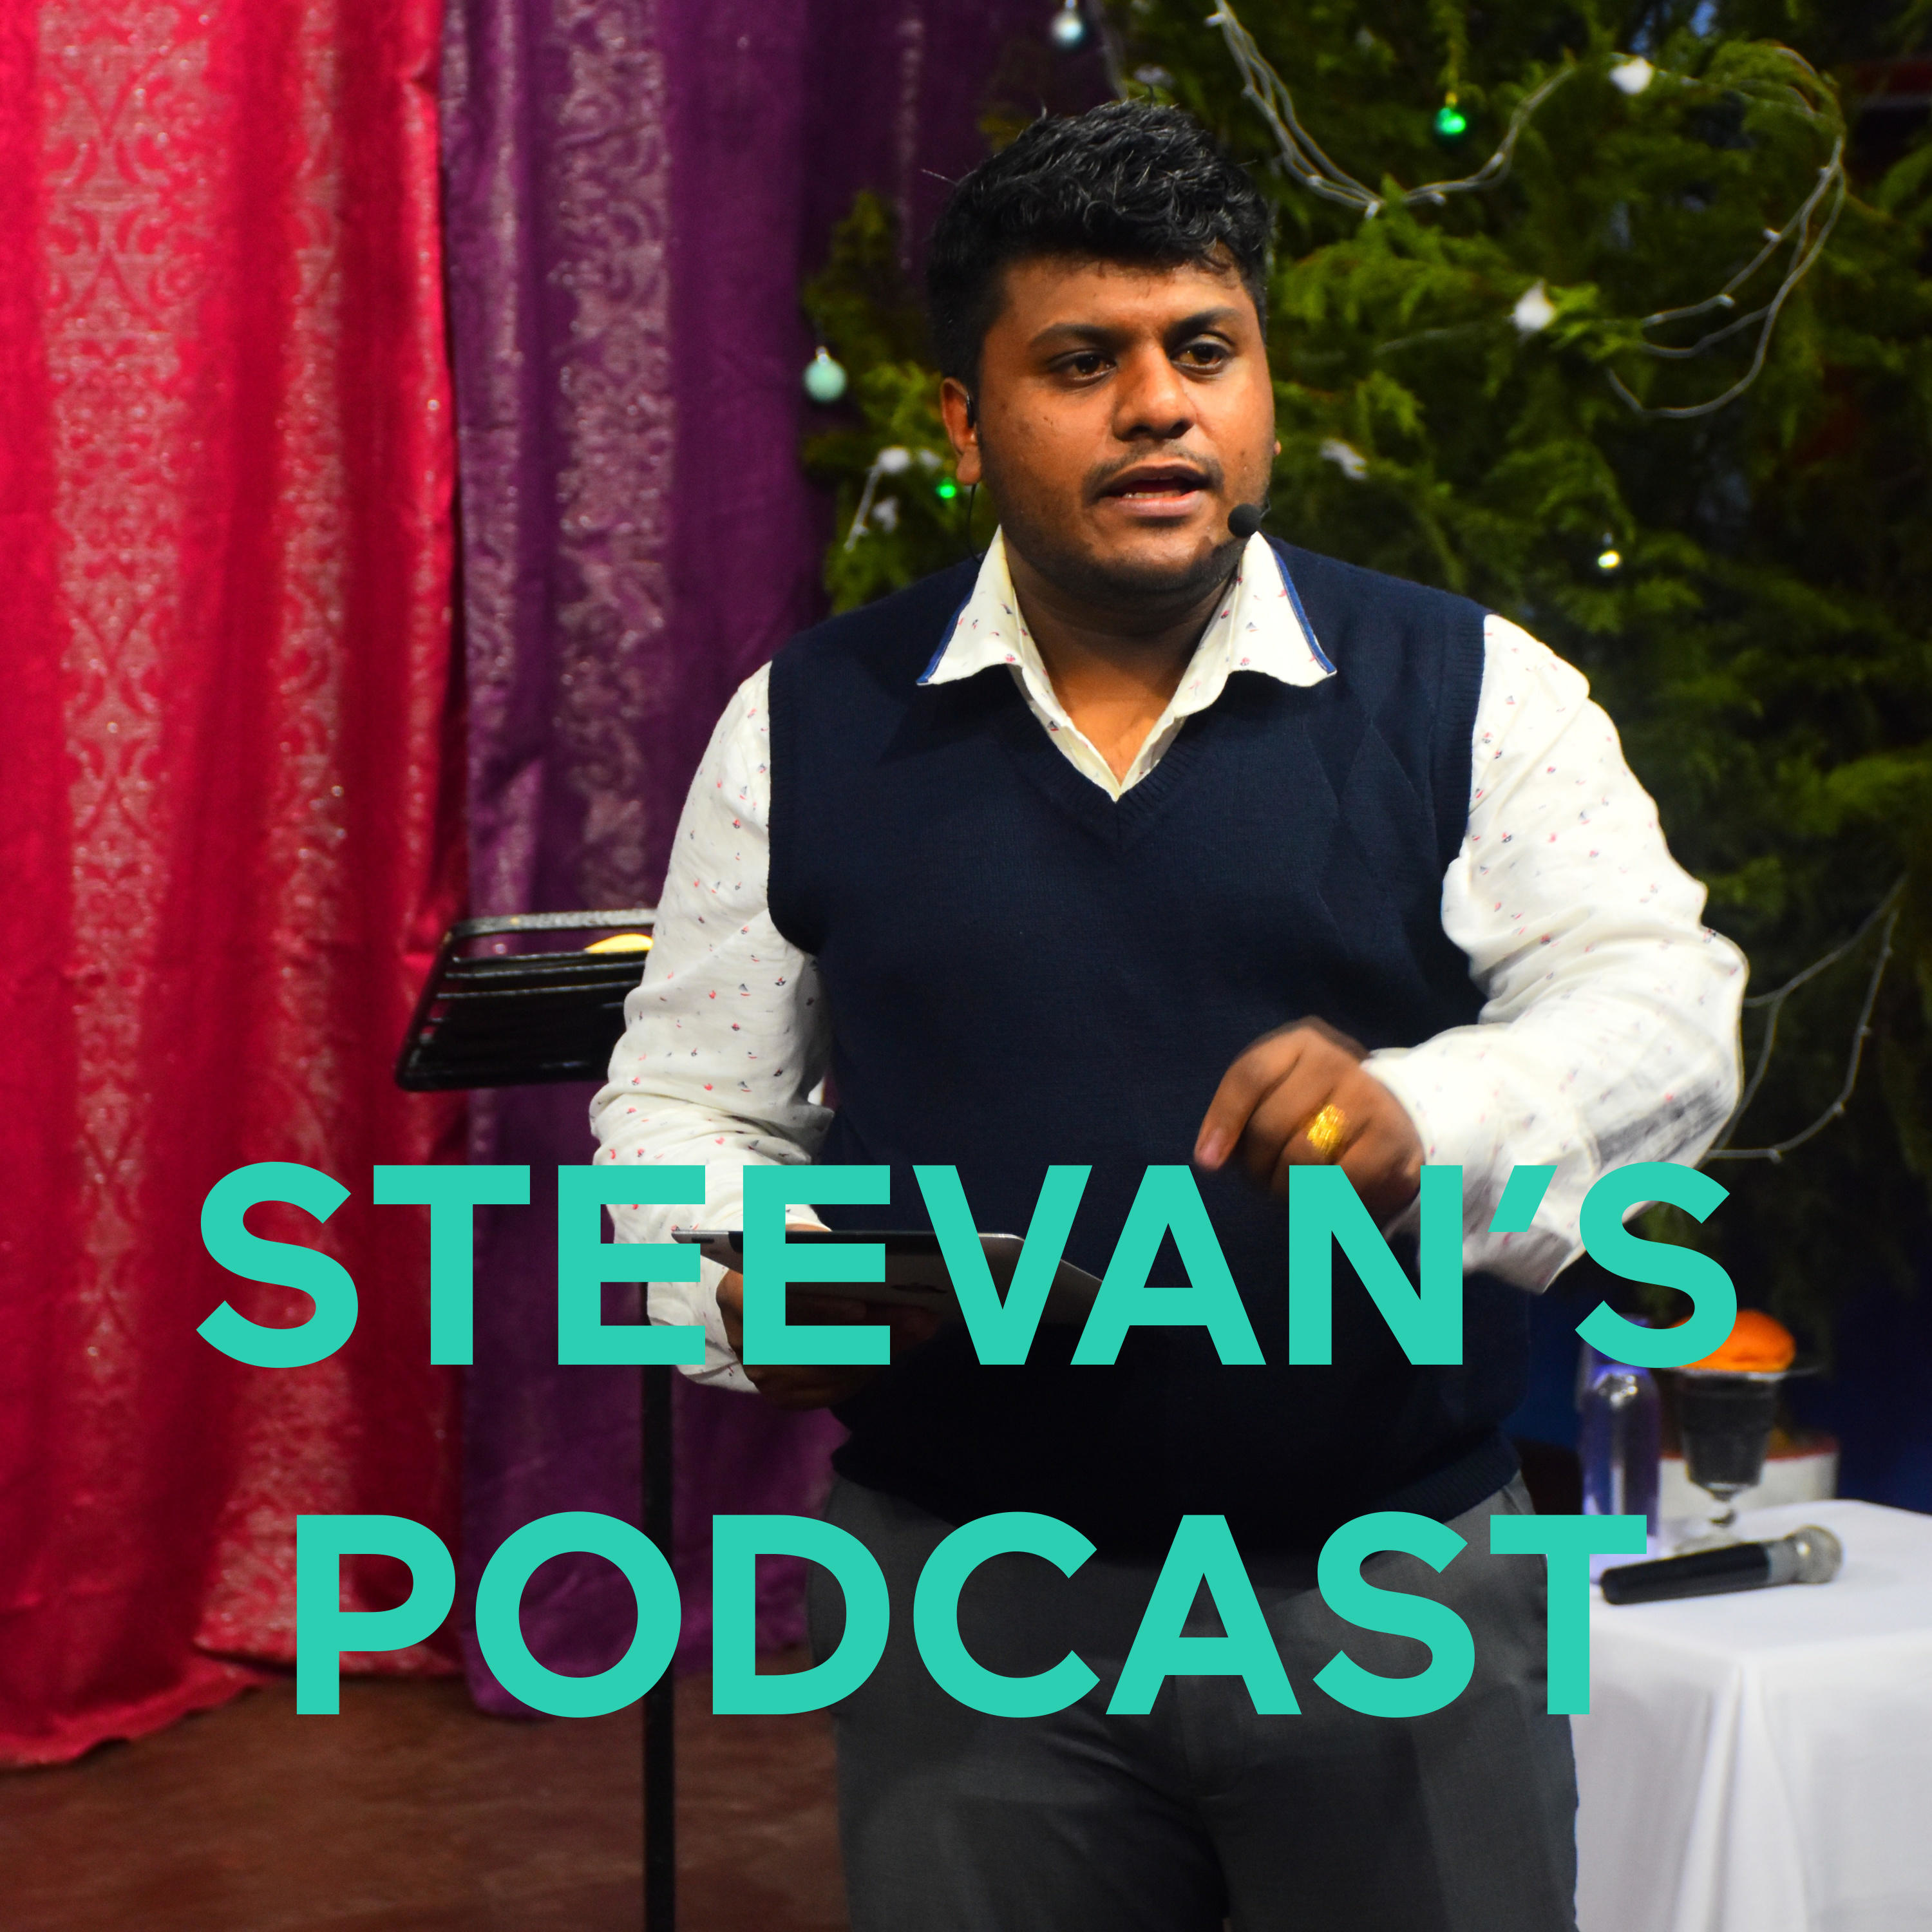 Steevans Podcast